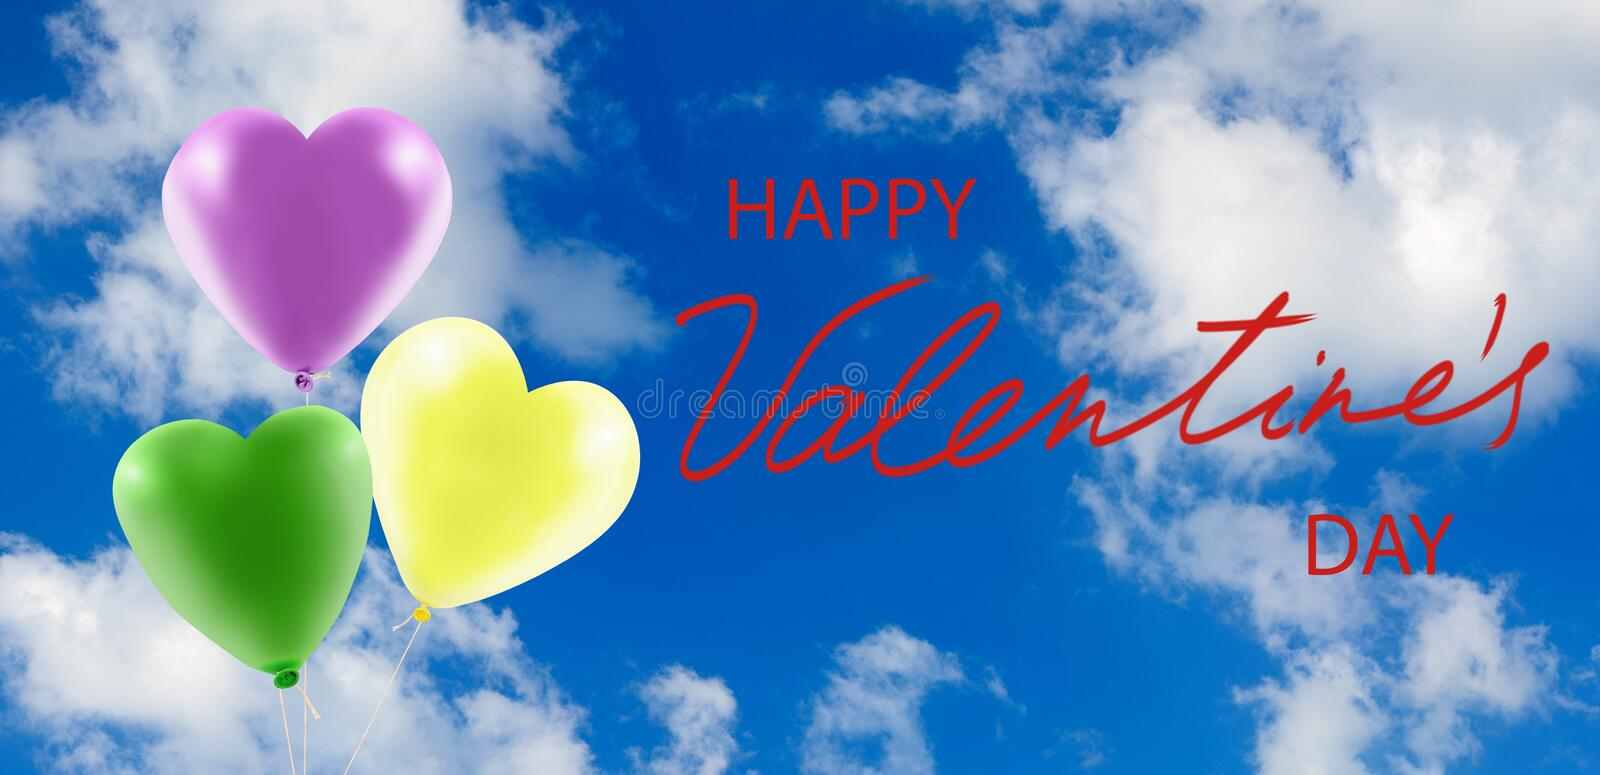 Valentines day with festive heart shaped balloons. Happy valentines day with festive heart shaped balloons stock photo